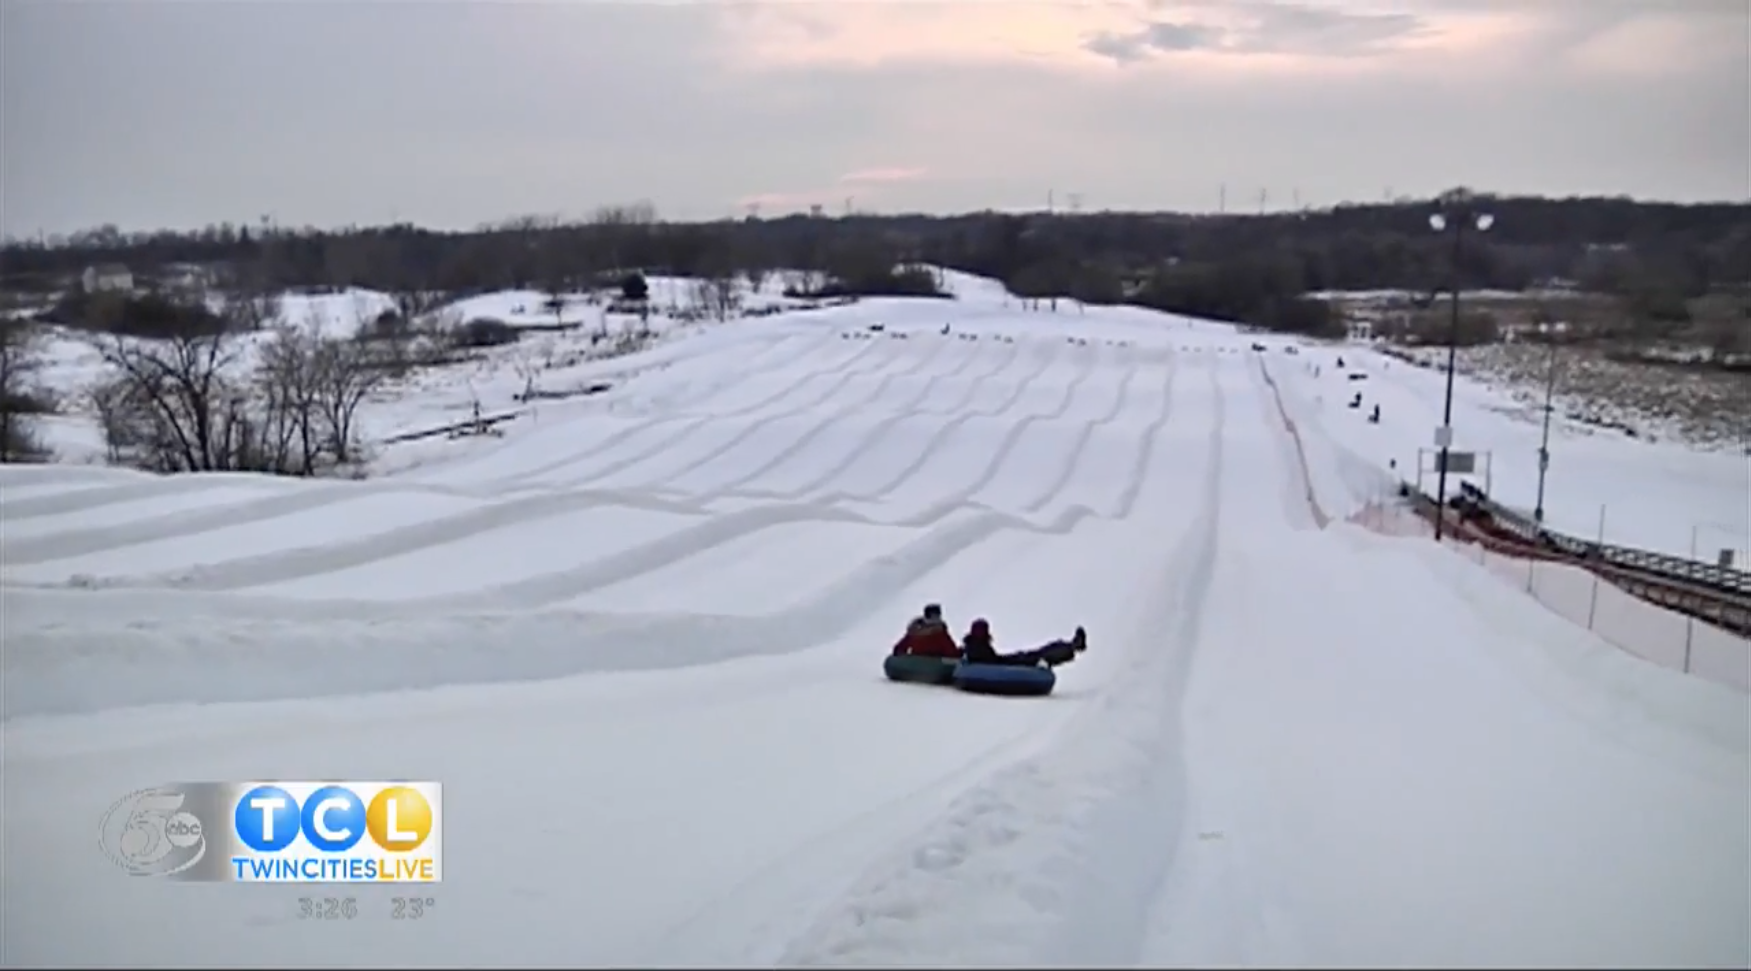 snow tubing down large hill